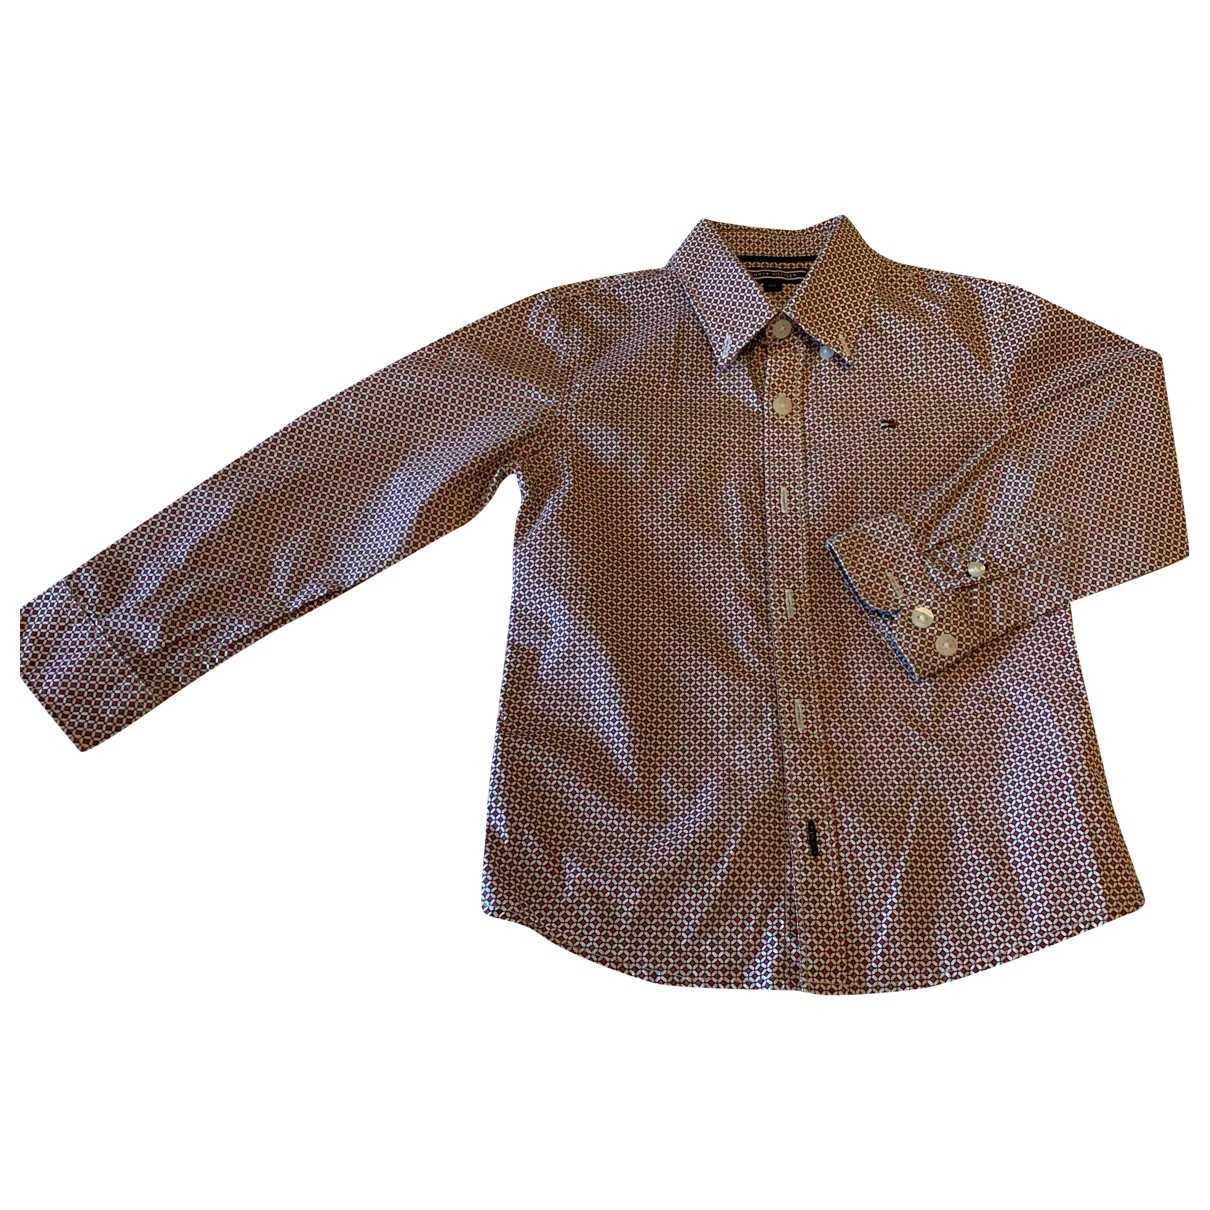 Tommy Hilfiger \N Burgundy Cotton  top for Kids 4 years - until 40 inches UK